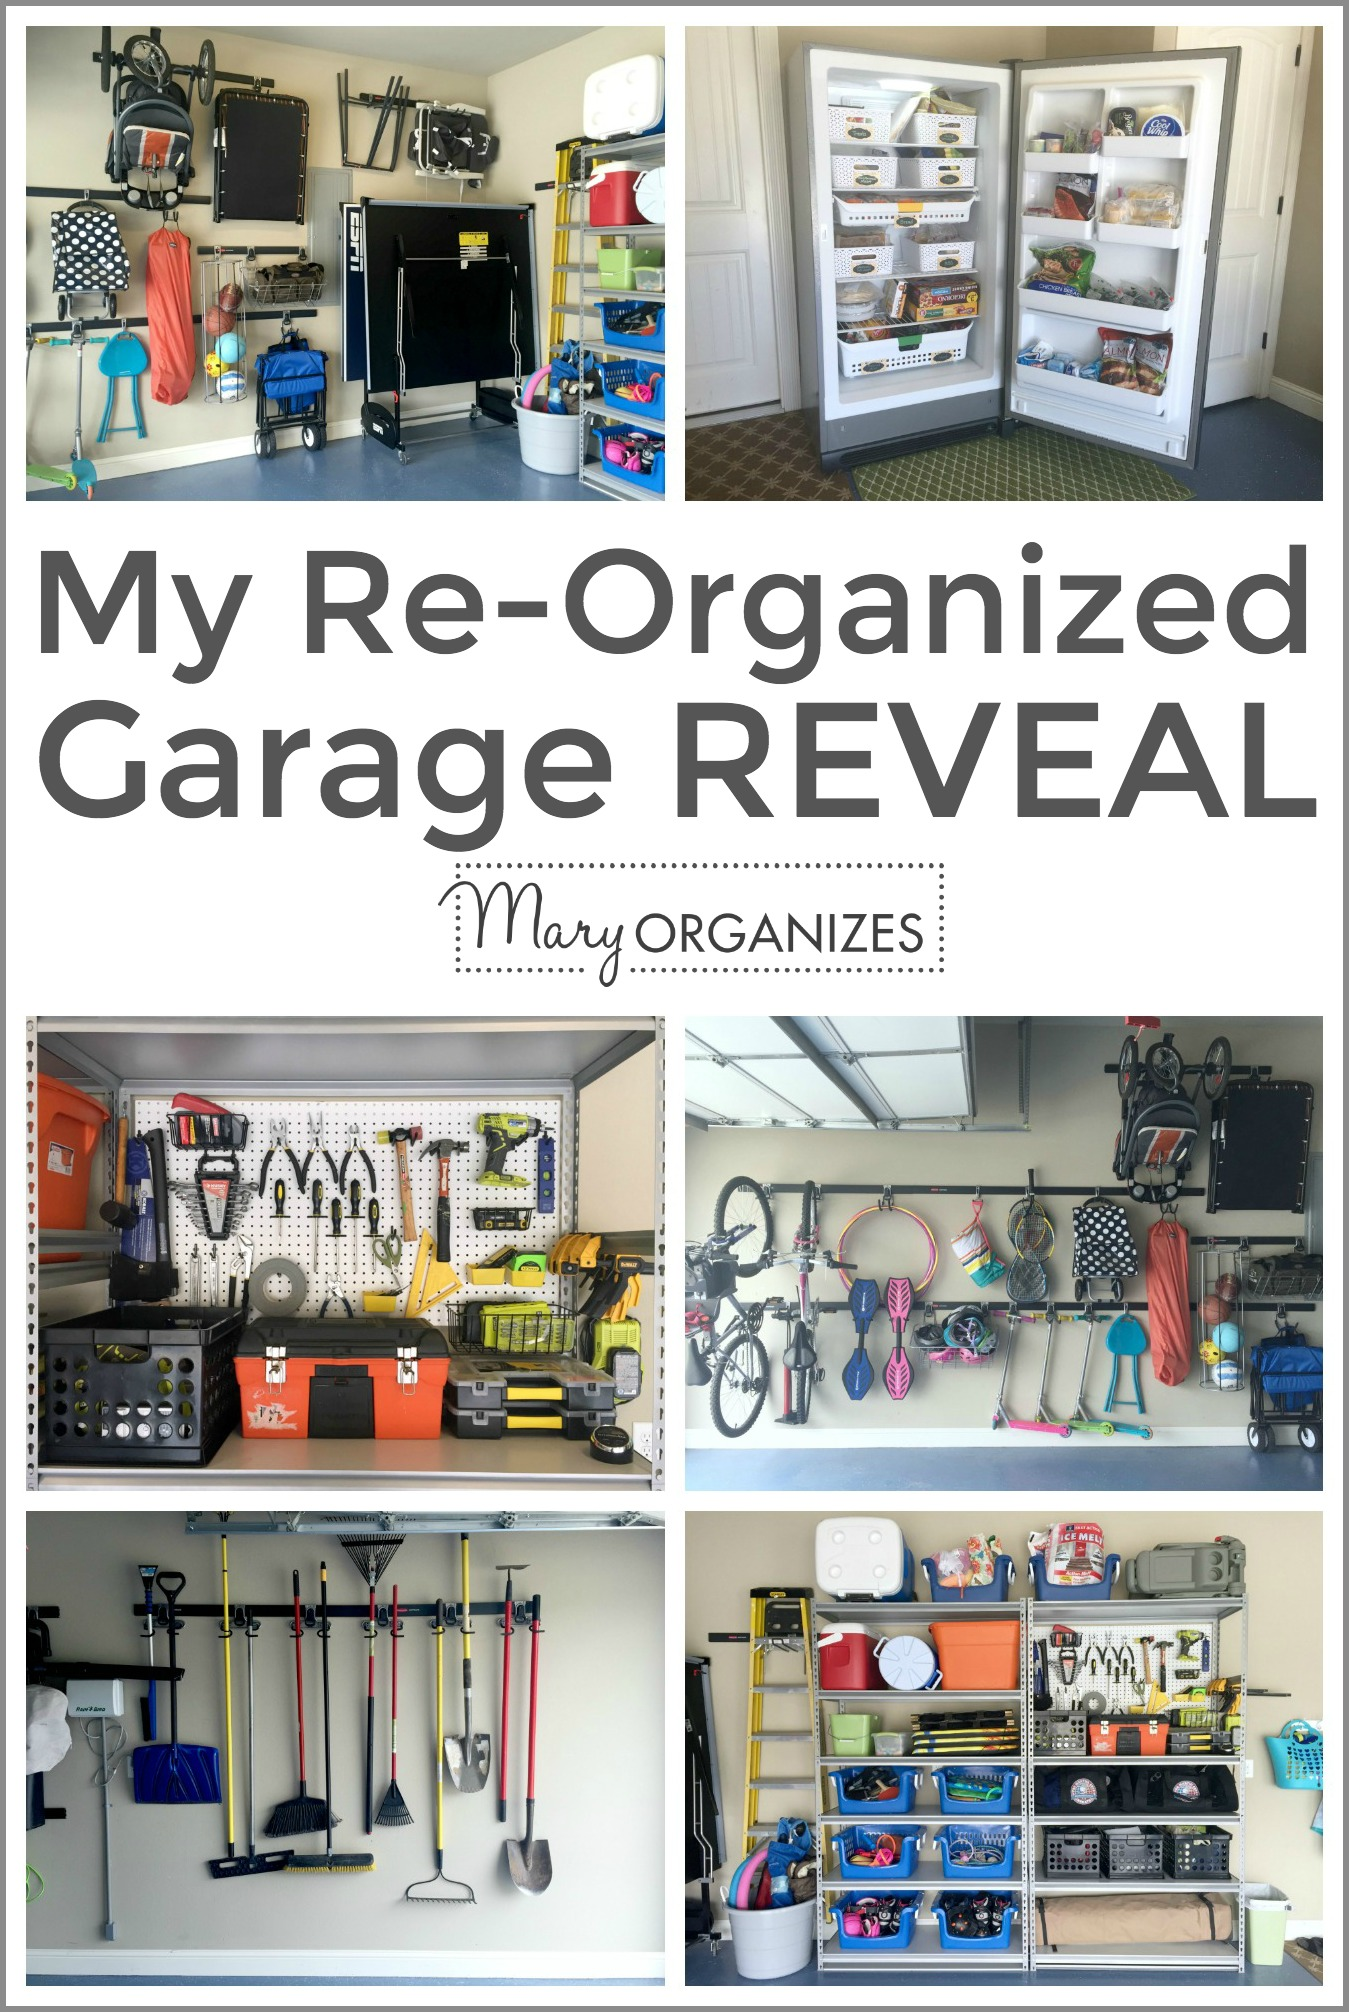 My Re-Organized Garage Reveal -v